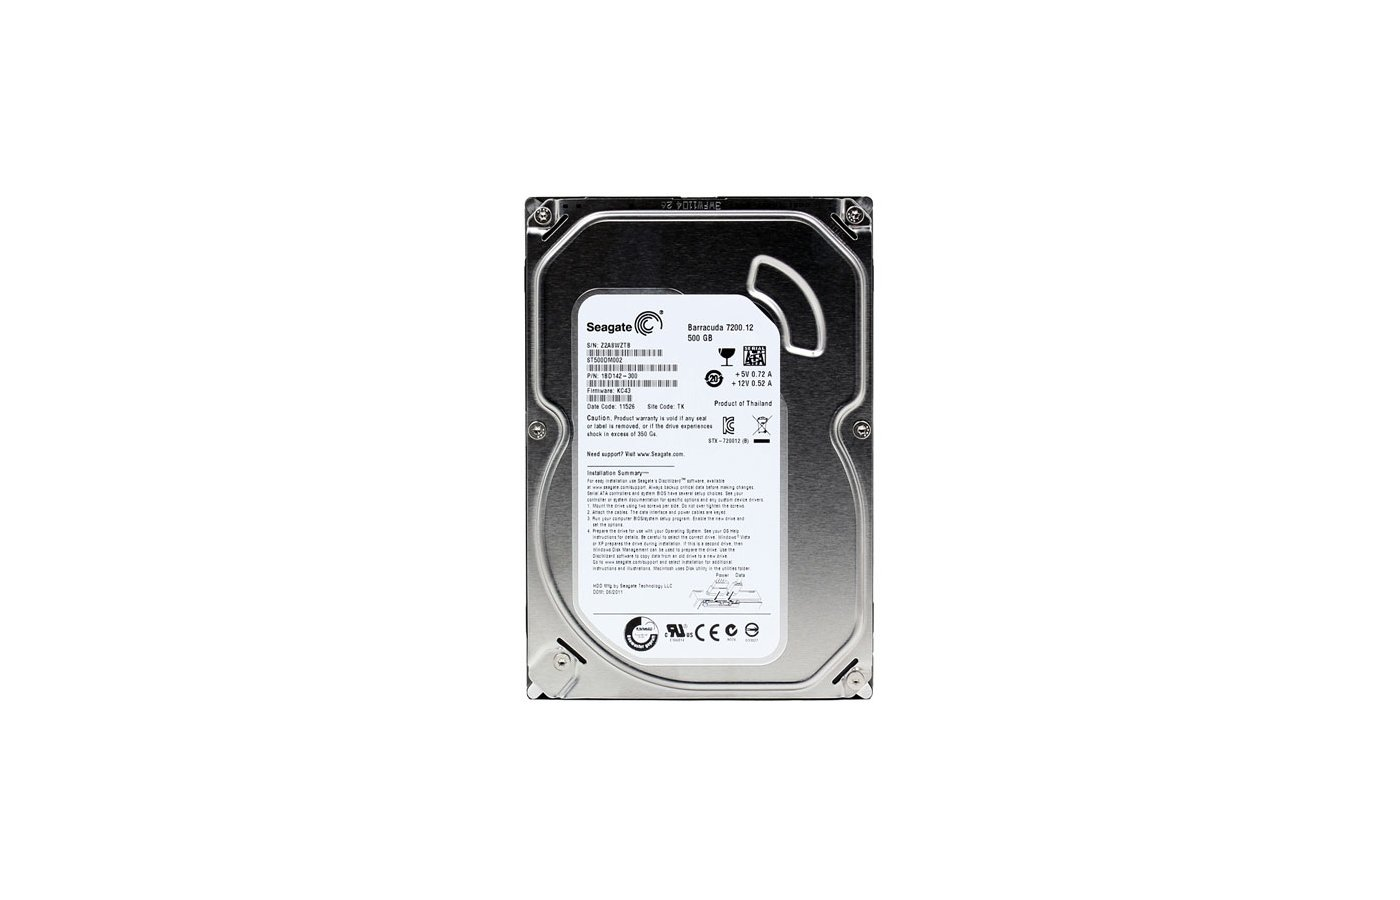 Жесткий диск Seagate SATA-III 500Gb ST500DM002 Desktop (7200rpm) 16Mb 3.5